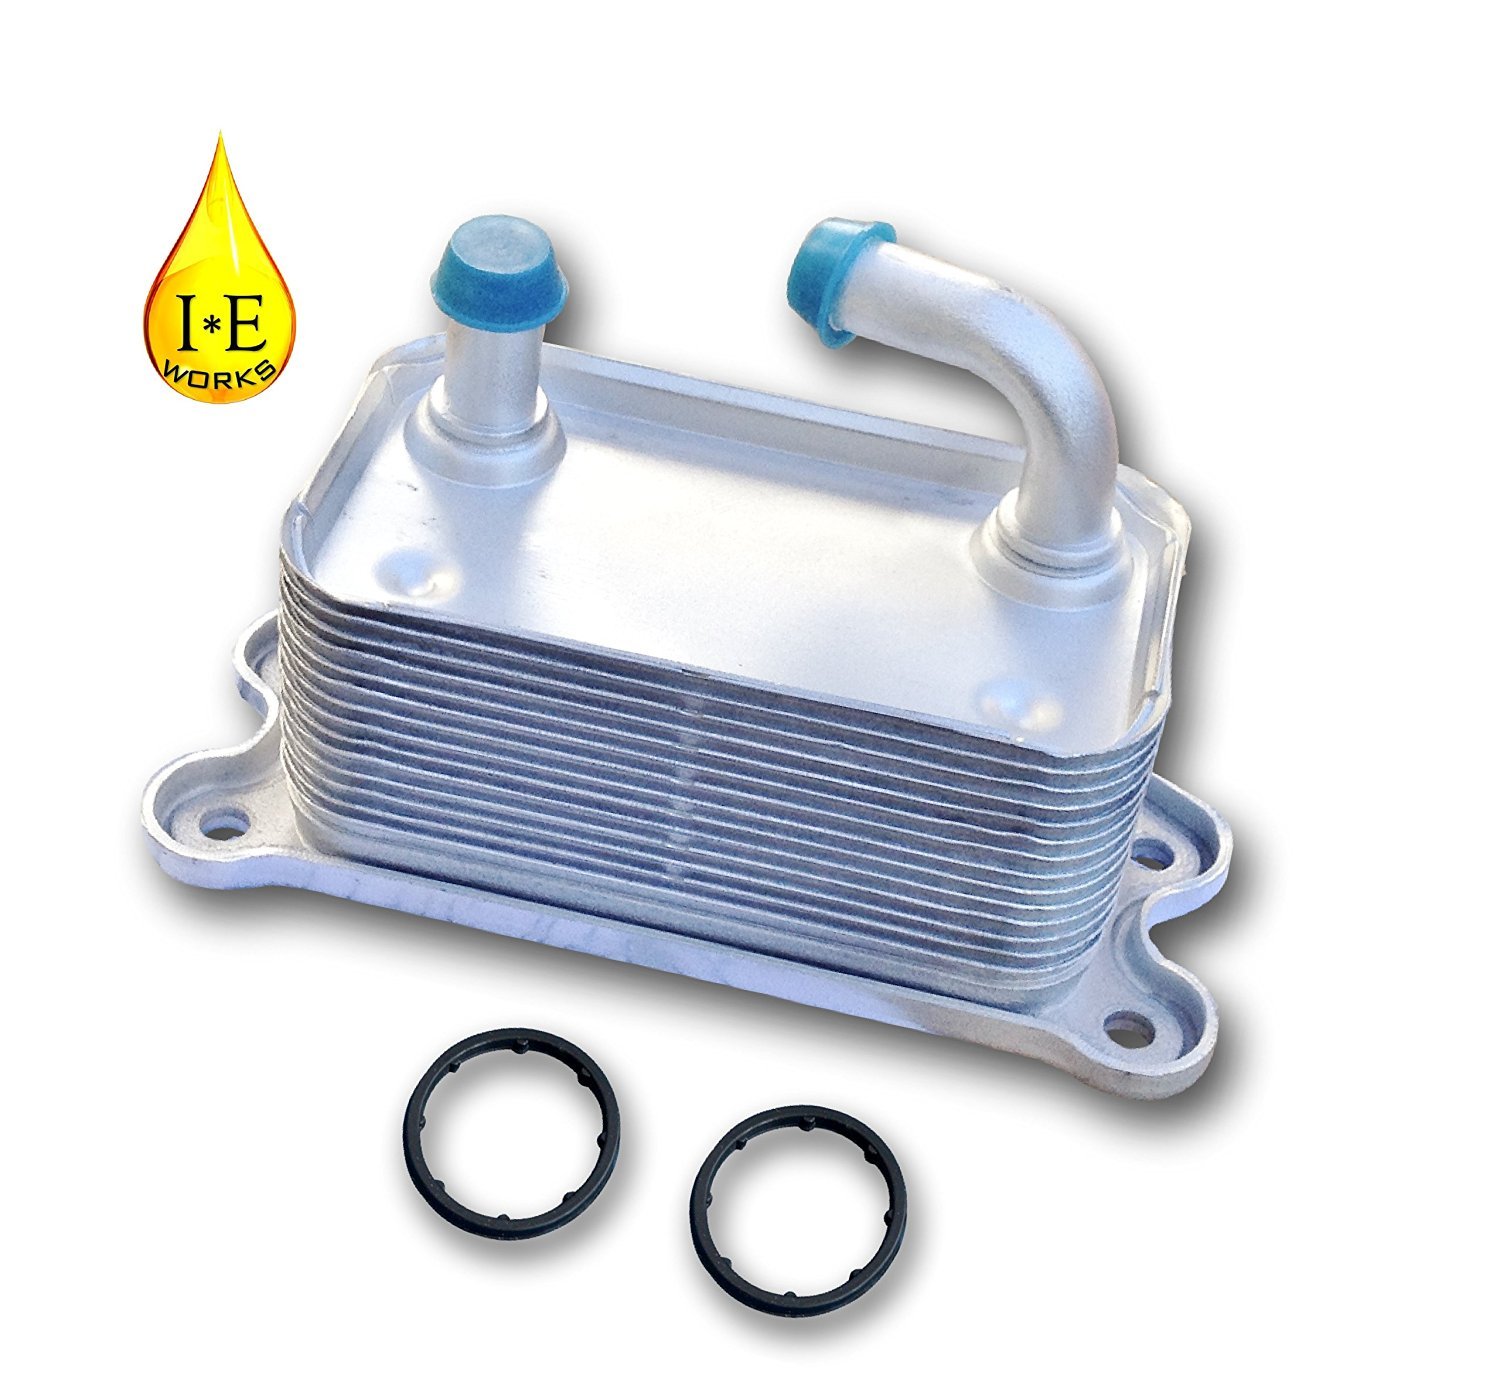 IE Works 31201909 New Engine Oil Cooler for VOLVO with O-Rings